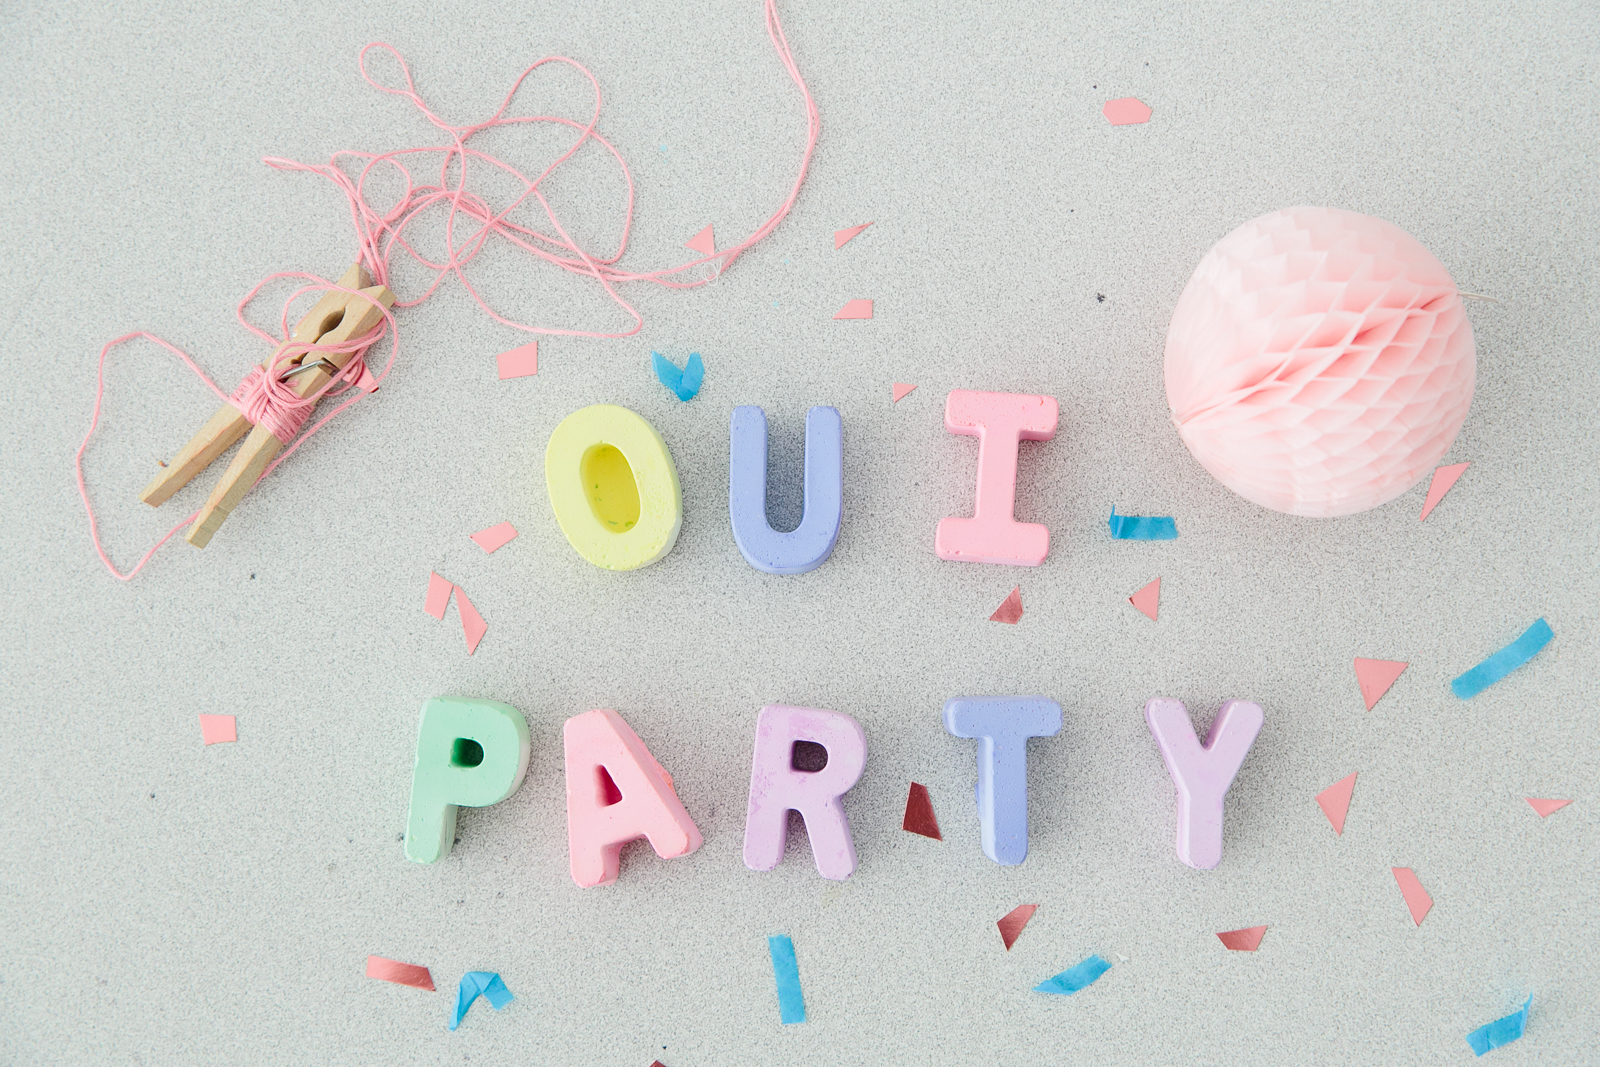 Oui Party - Back to School - Sidewalk Chalk.jpg